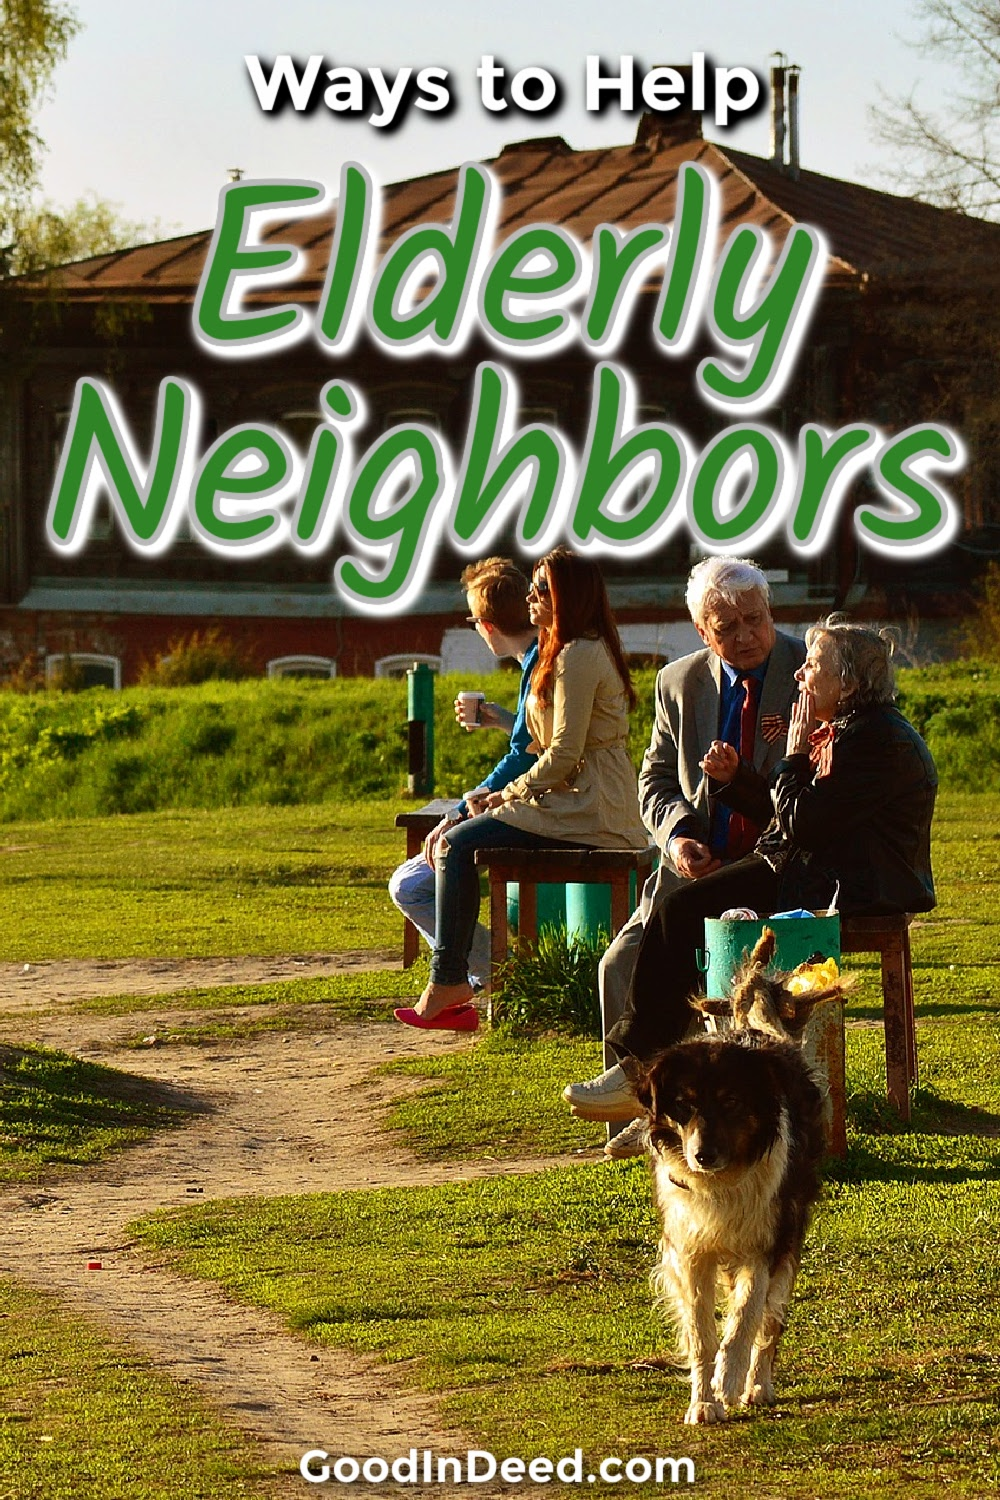 Finding ways to help elderly neighbors is easier than you may think and could start a chain reaction that ties your community together.